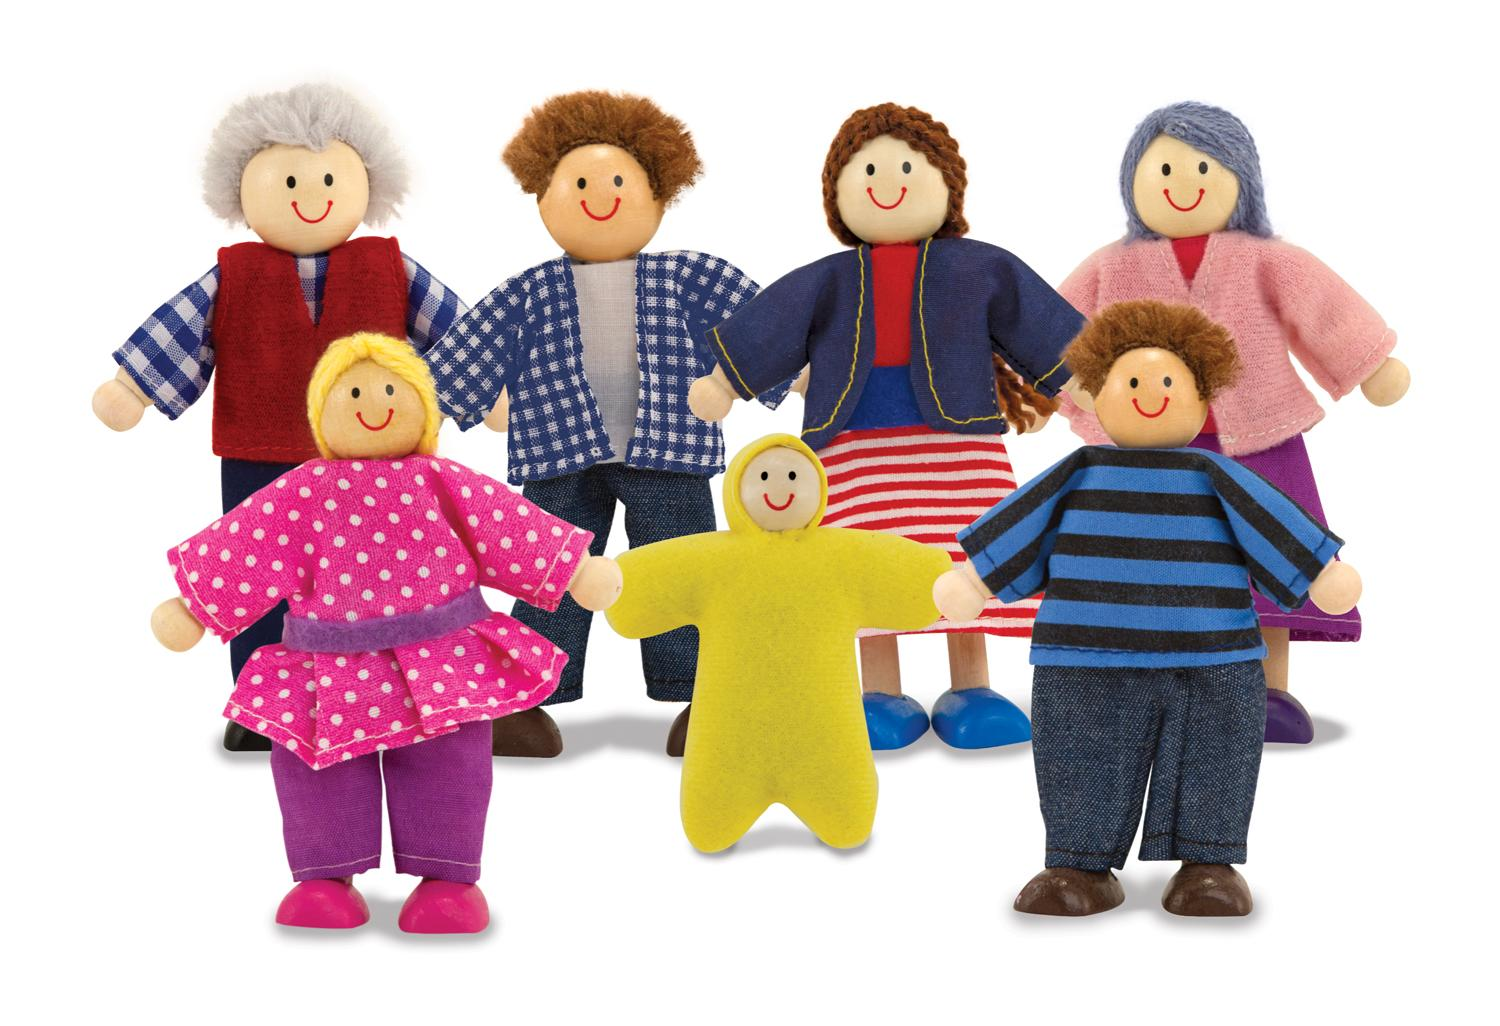 Imaginative Toys For Girls : Amazon.com: melissa & doug 7 piece poseable wooden doll family for